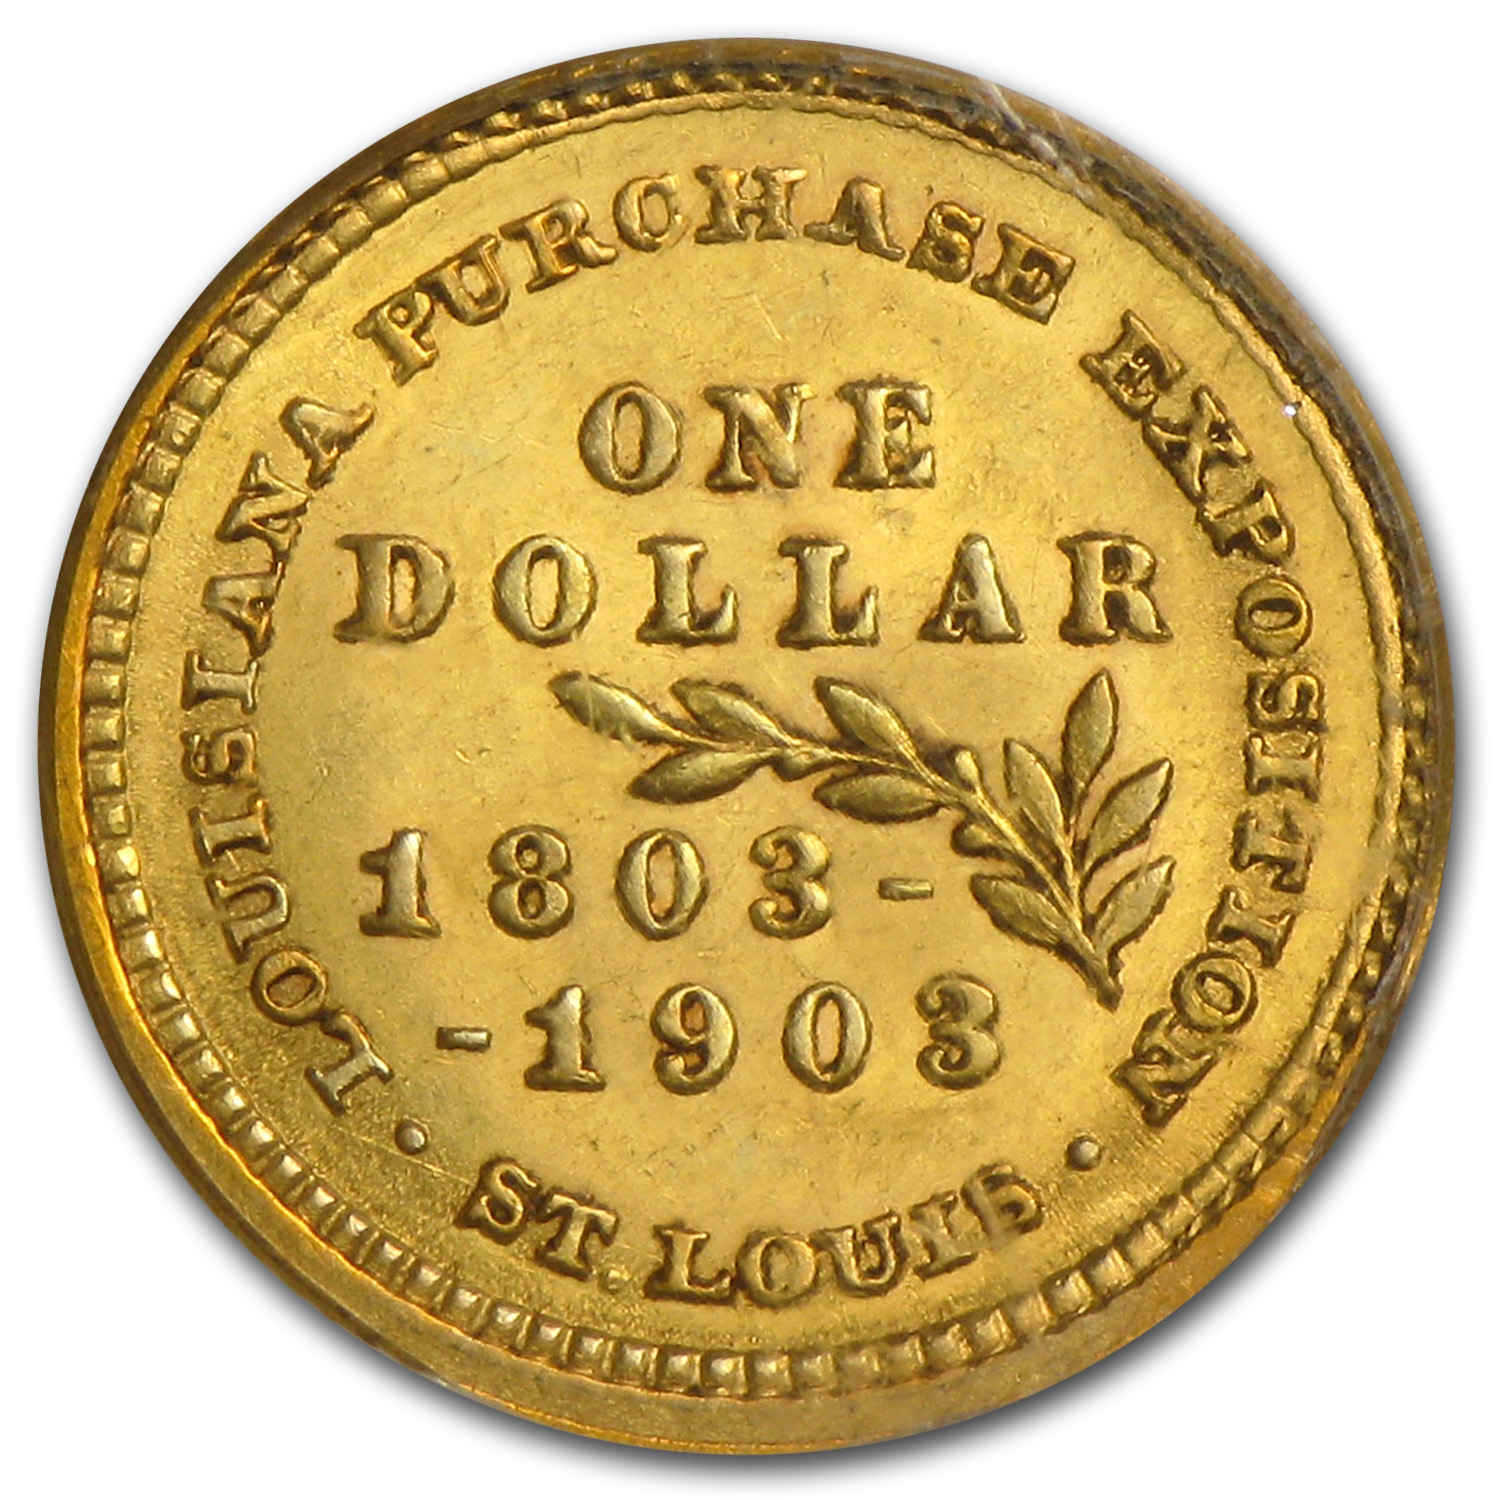 1903 $1.00 Gold Louisiana Purchase - Jefferson AU-55 PCGS